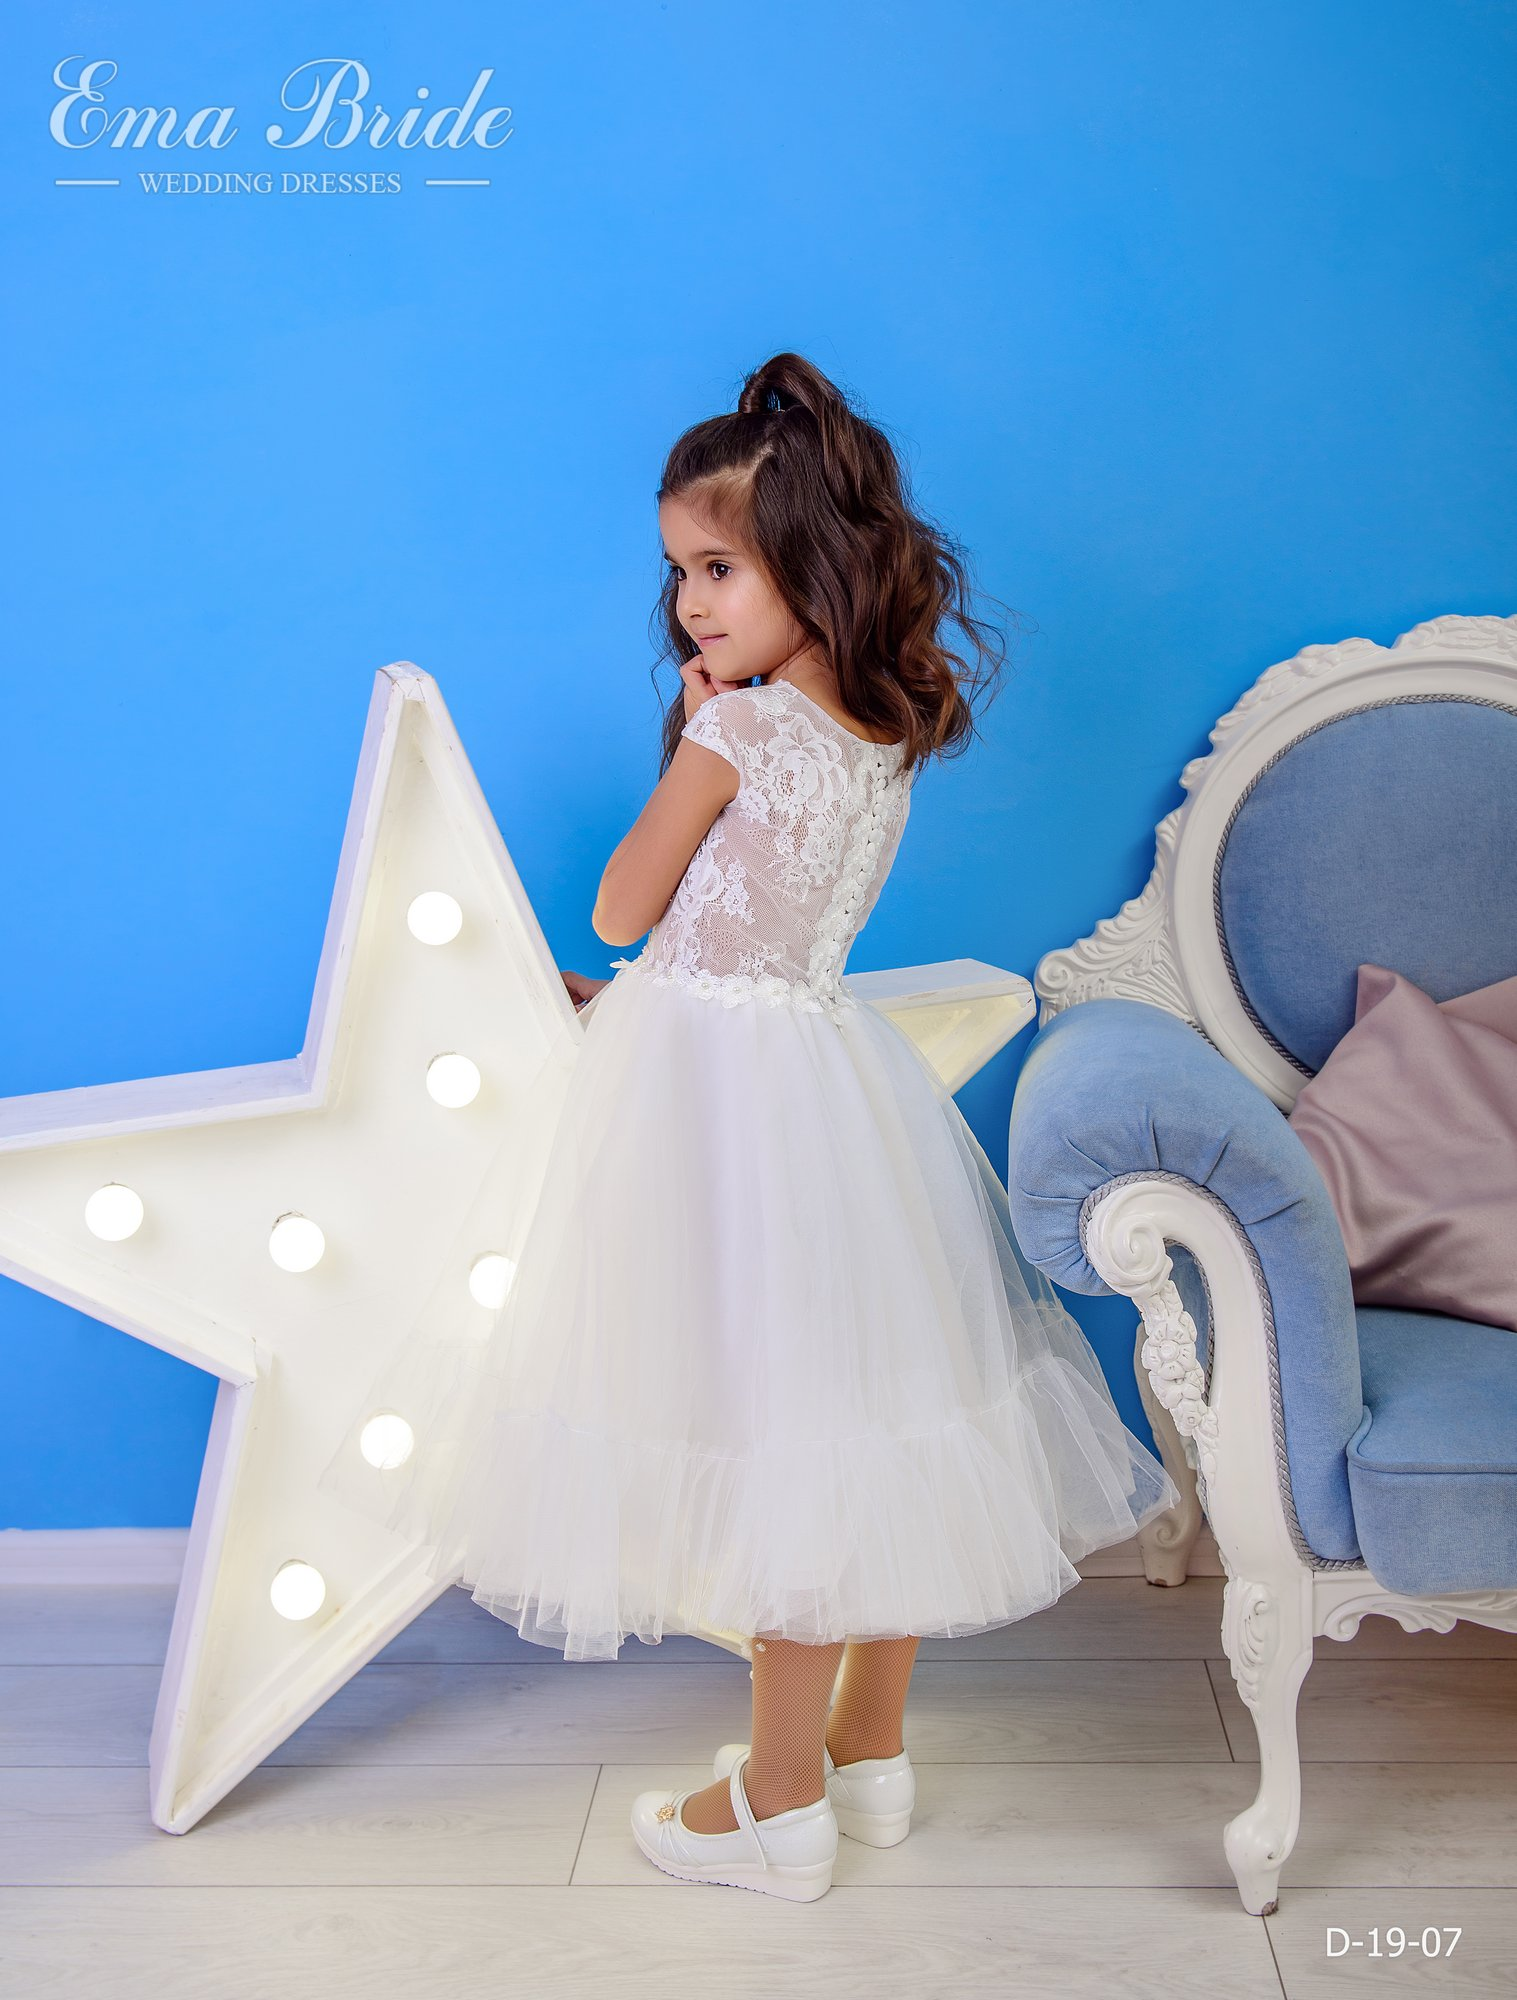 Children's dress by EmaBride D-19-07 2019-2